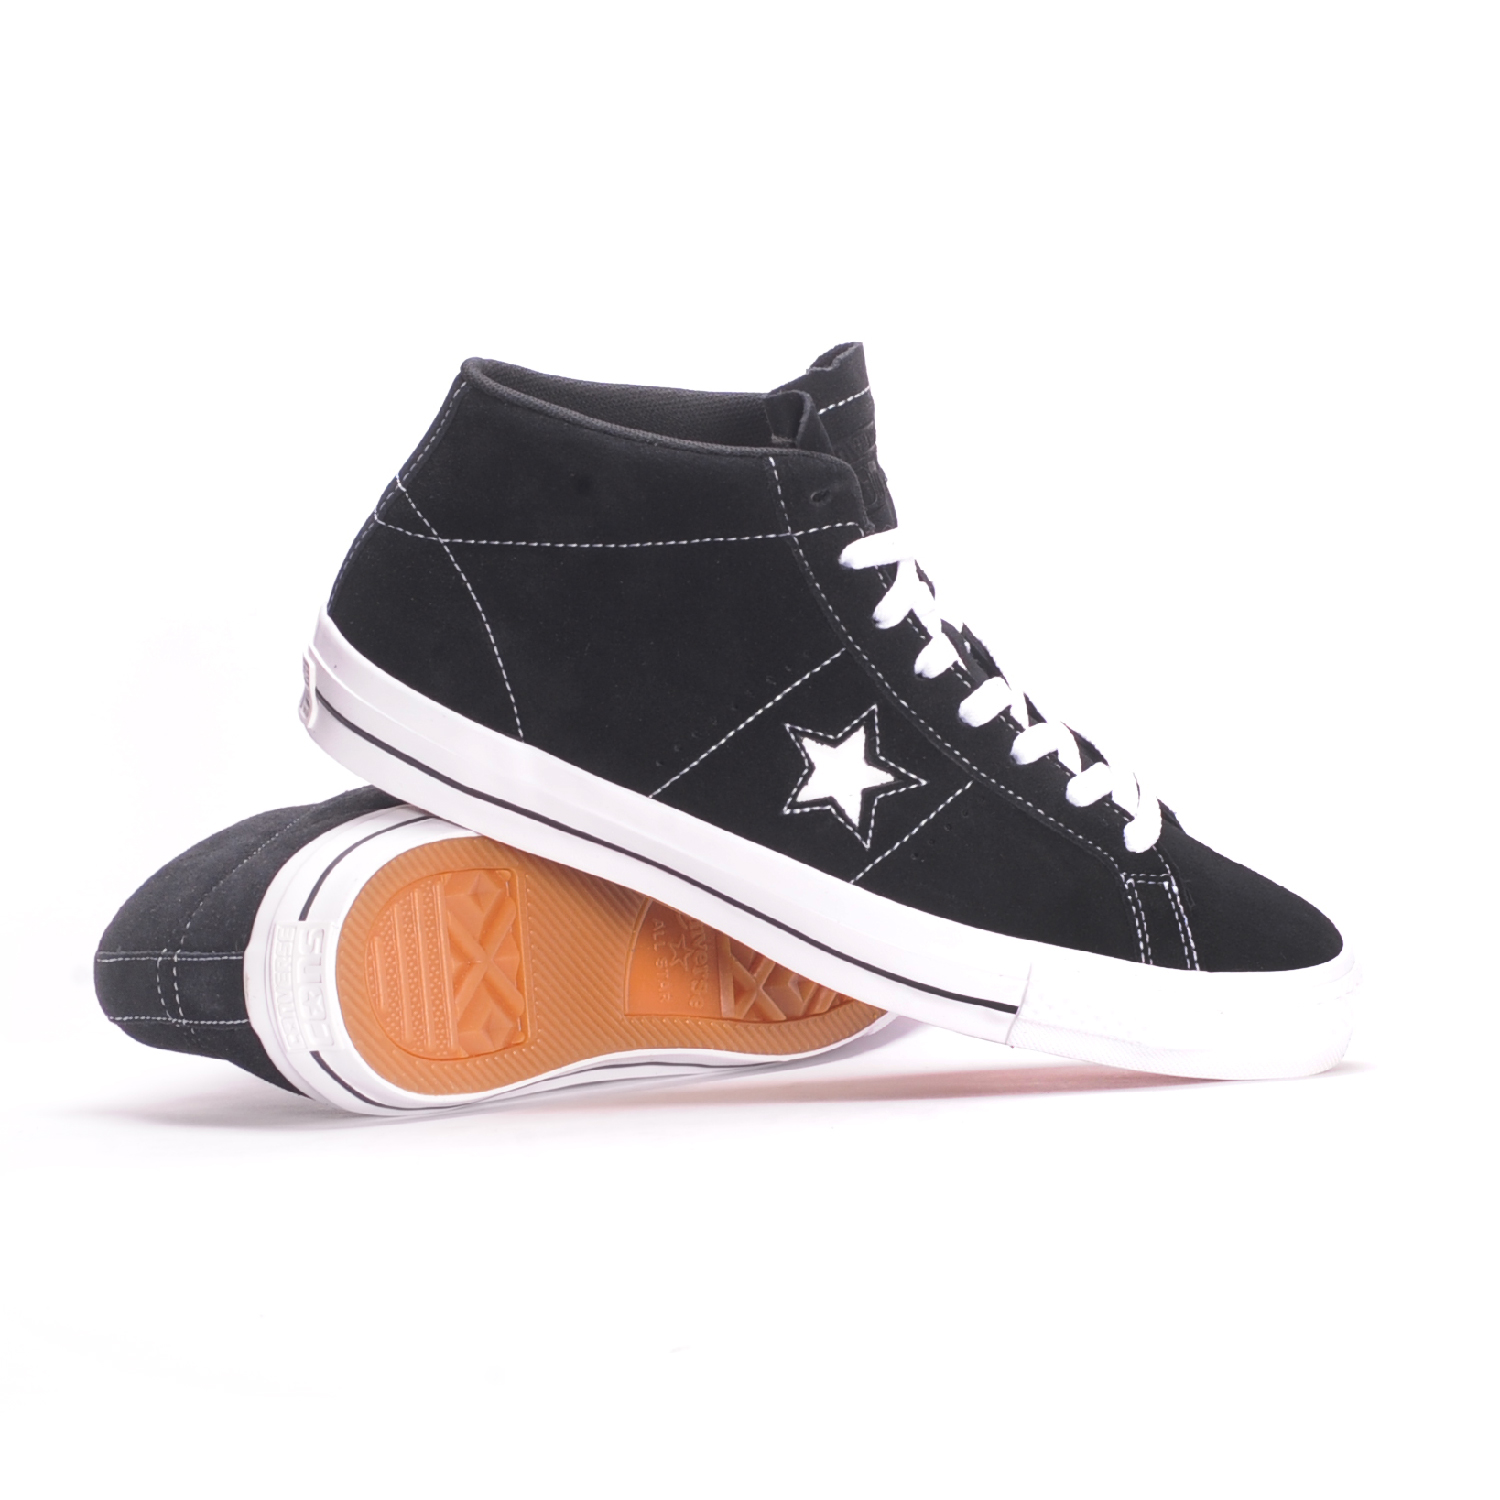 b14ebec84fc4e3 Converse One Star Pro Suede Mid (Black White Black) Men s ...